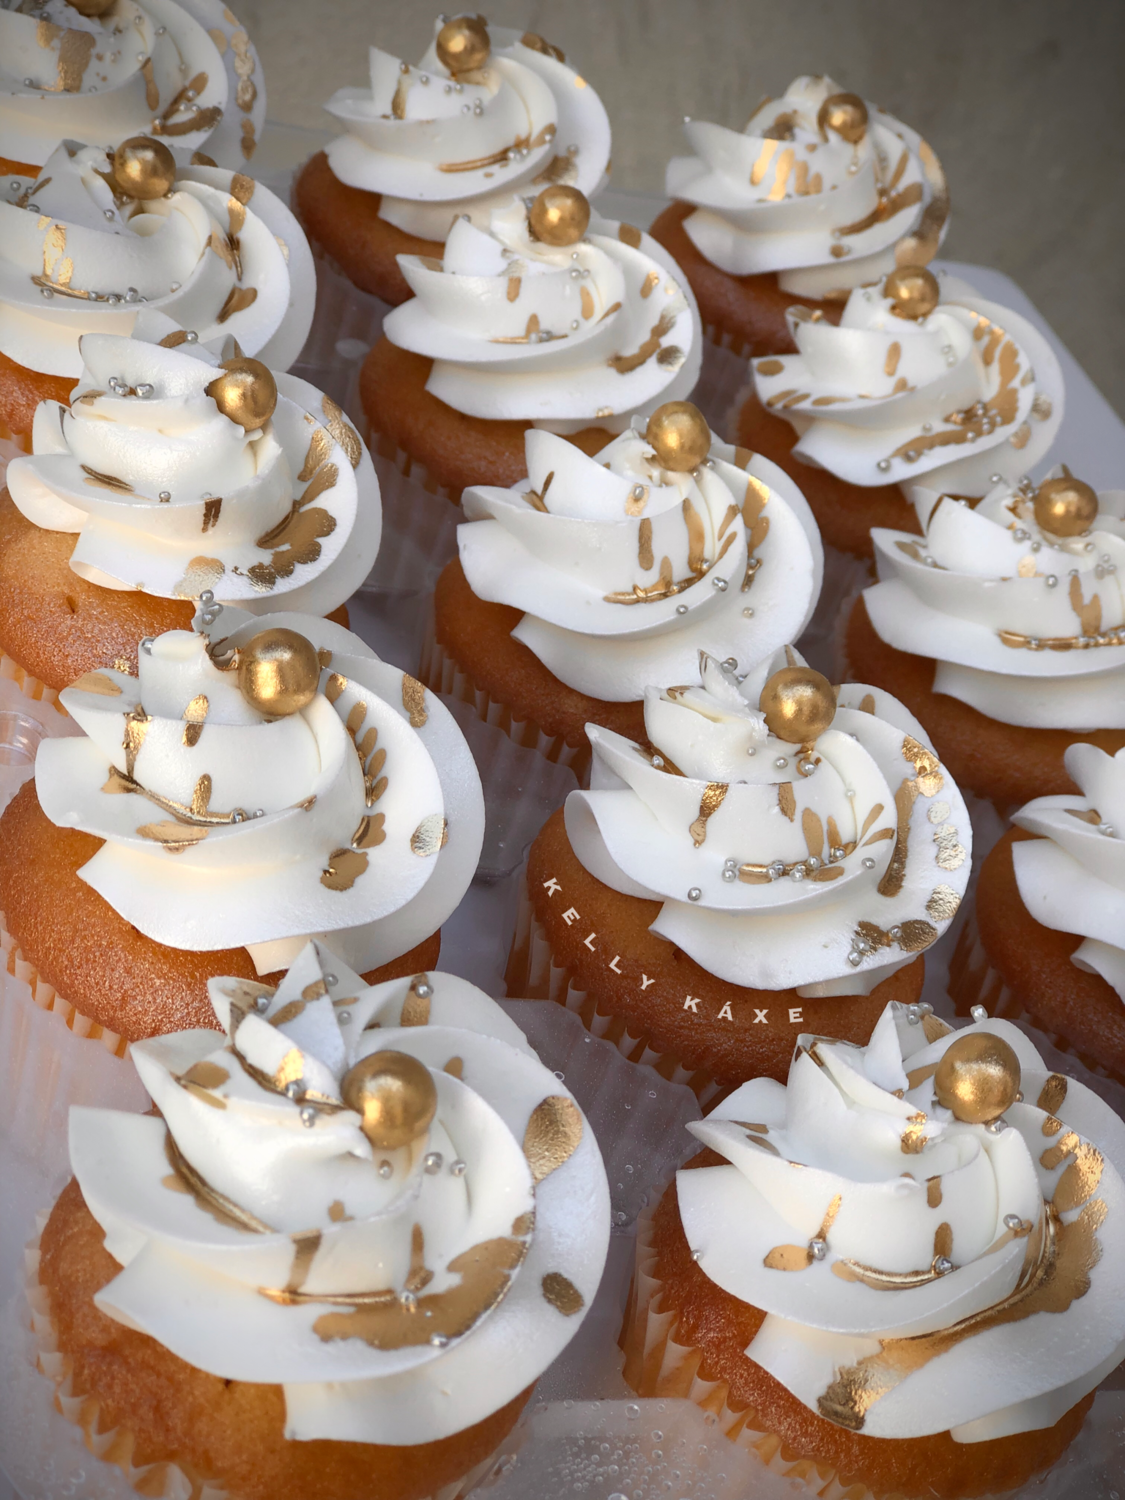 Vanilla Cupcakes With White Almond Wedding Cake Frosting! (No Filling)